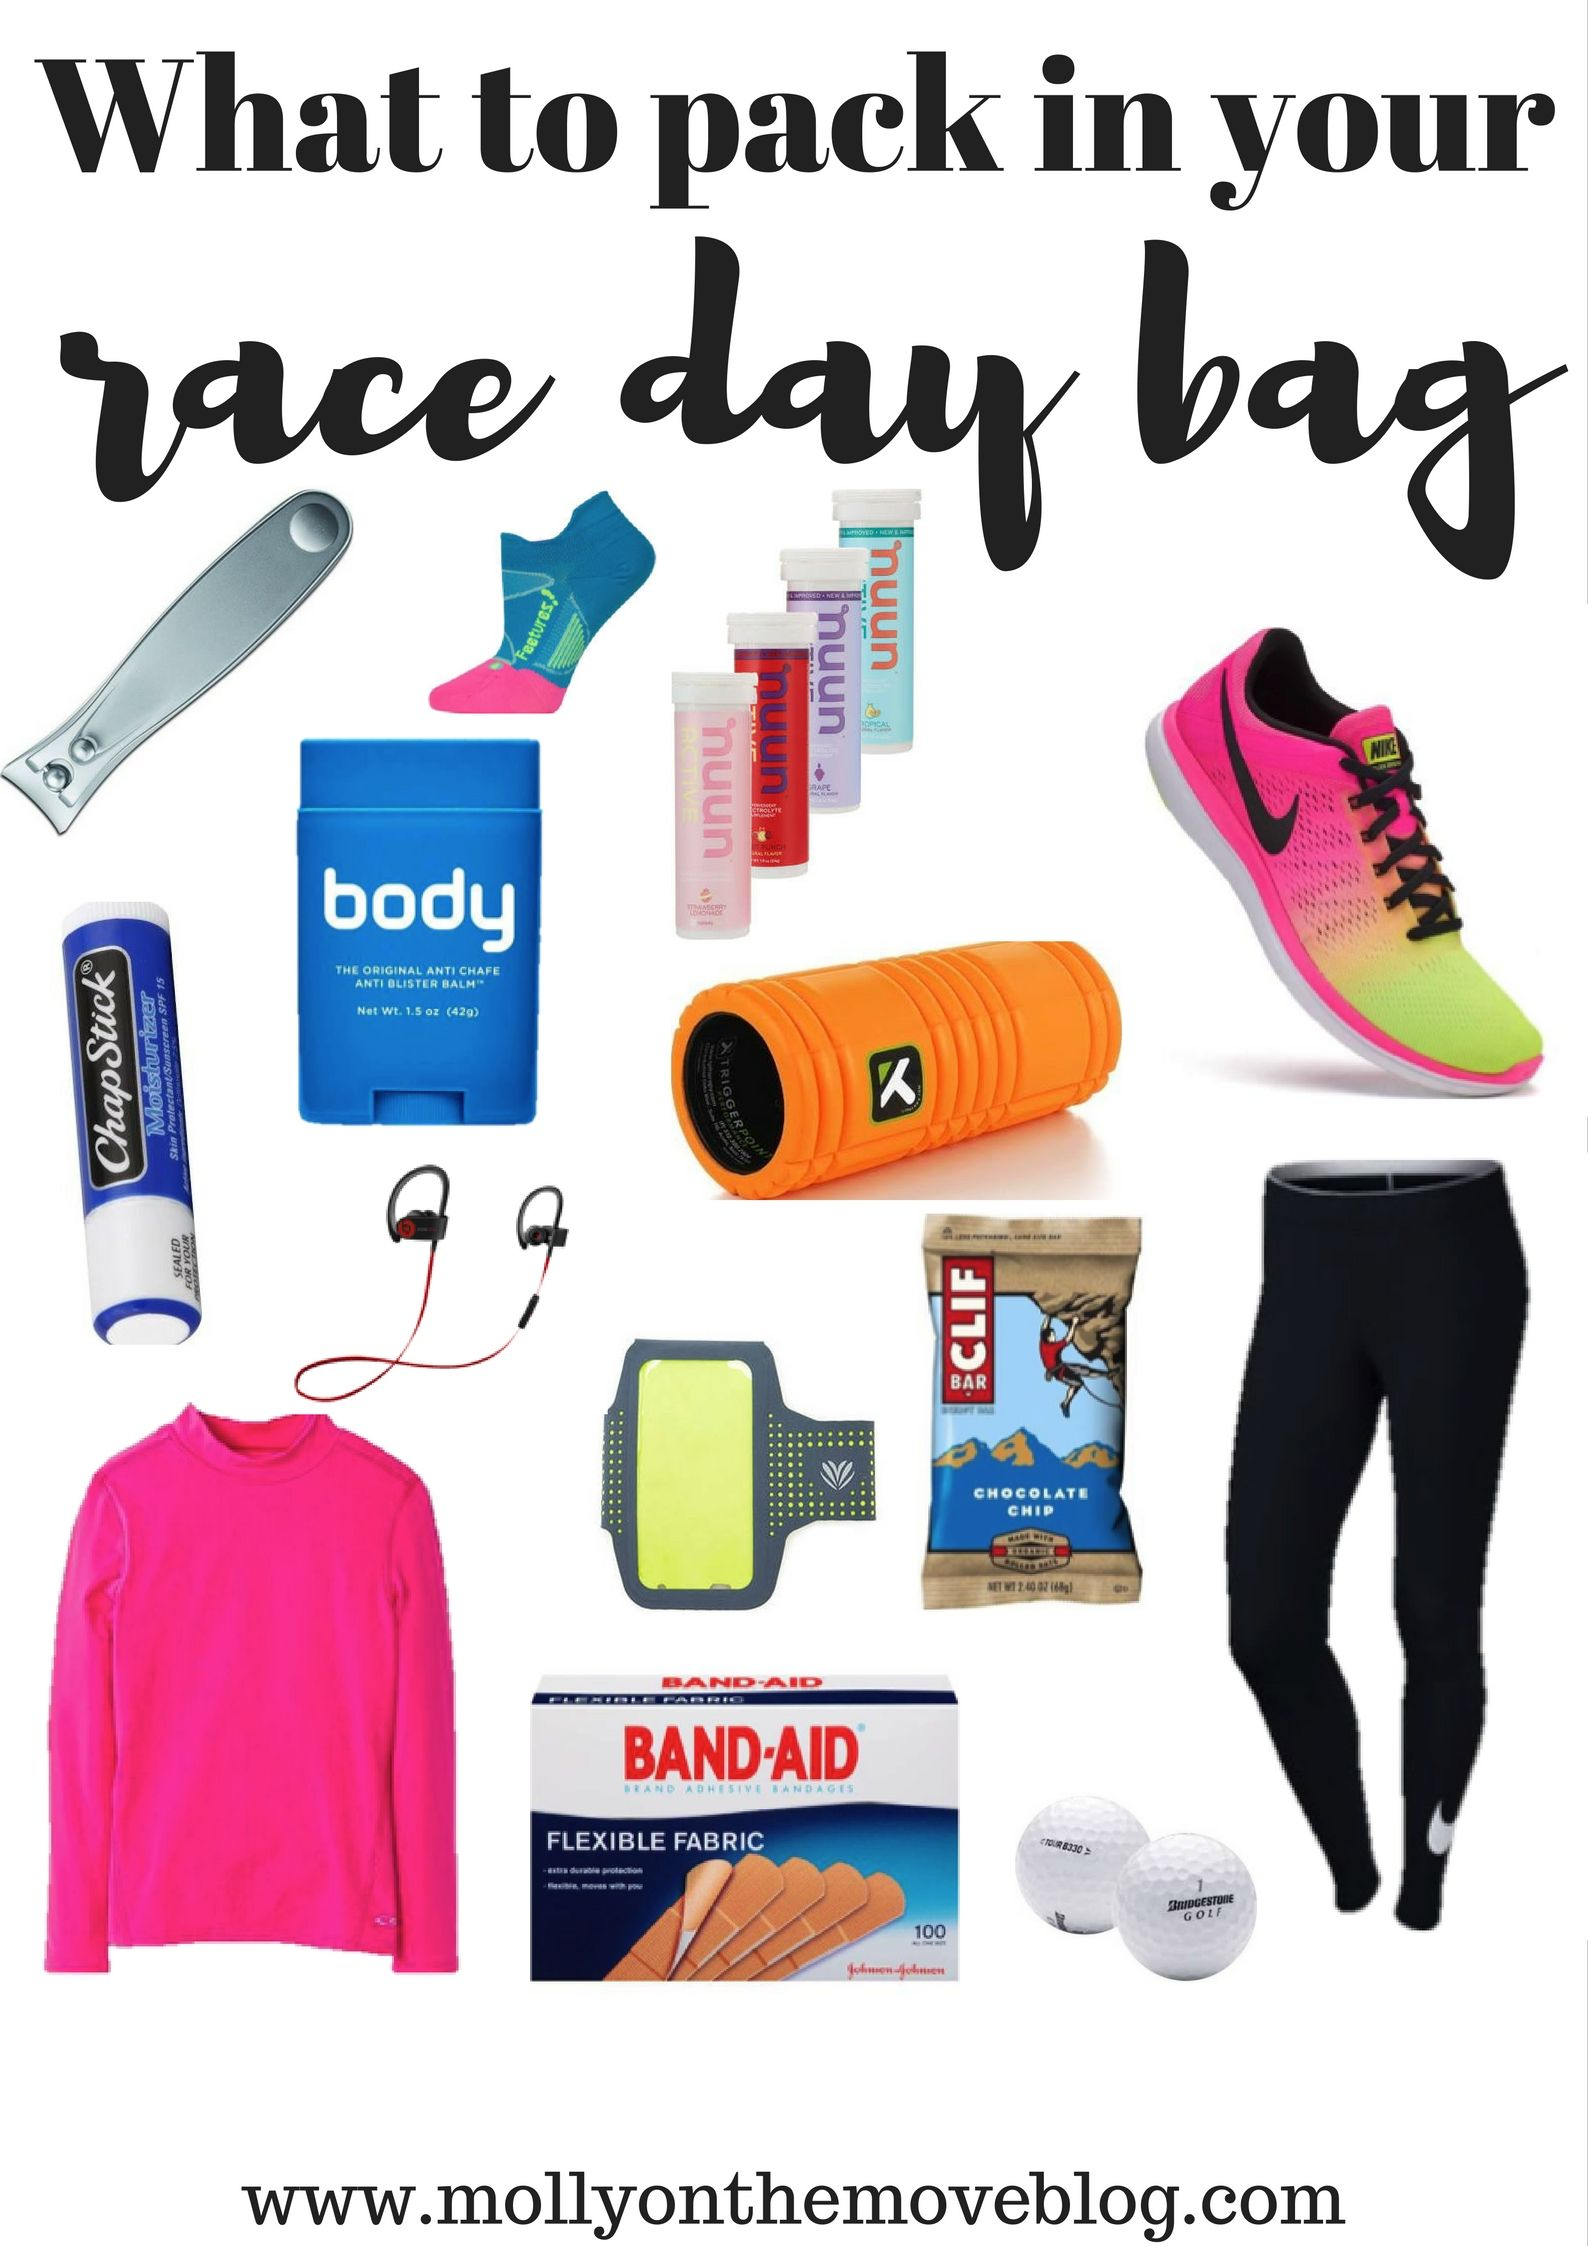 Running A Race Is Stressful Enough As Is So Don T Let Packing For The Race Be A Worry Too Check My List To Make Sur Marathon Gear Race Day Gym Bag